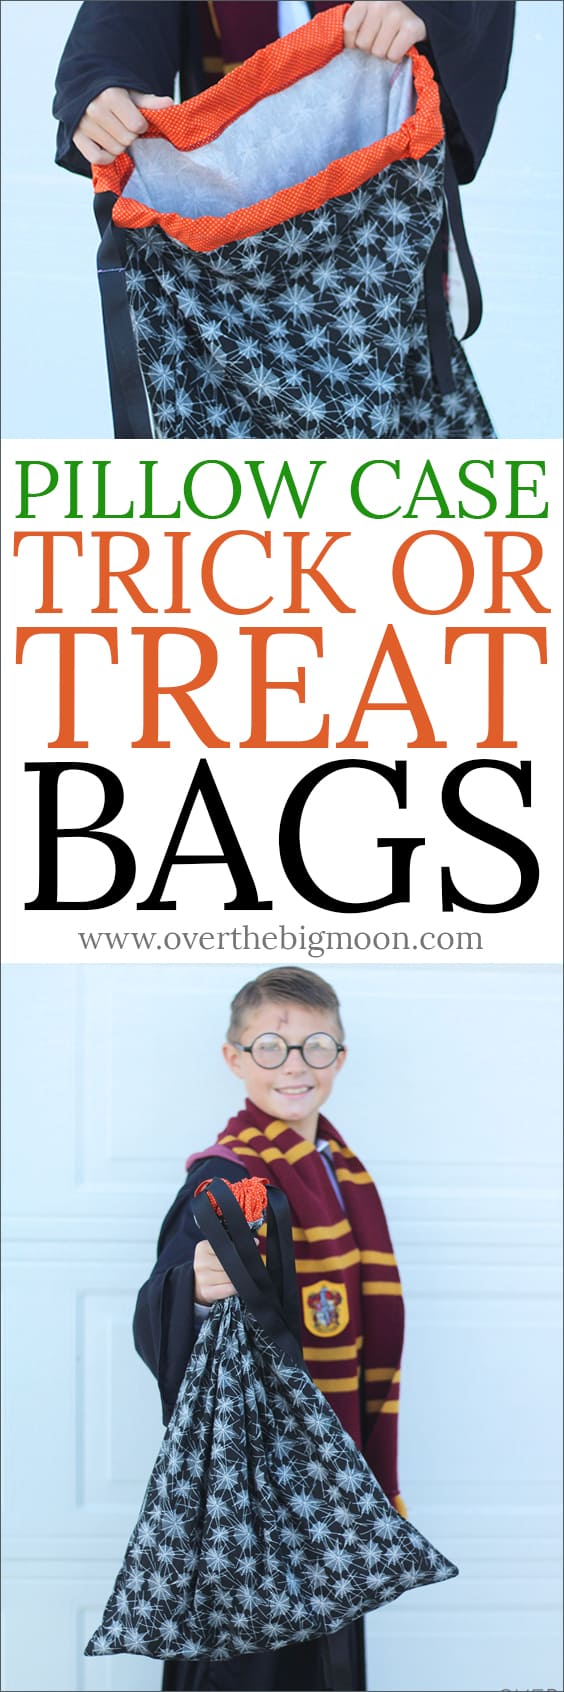 Pillow Case Trick or Treat Bags for kids! The drawstring top won't let them loose any candy! From www.overthebigmoon.com!